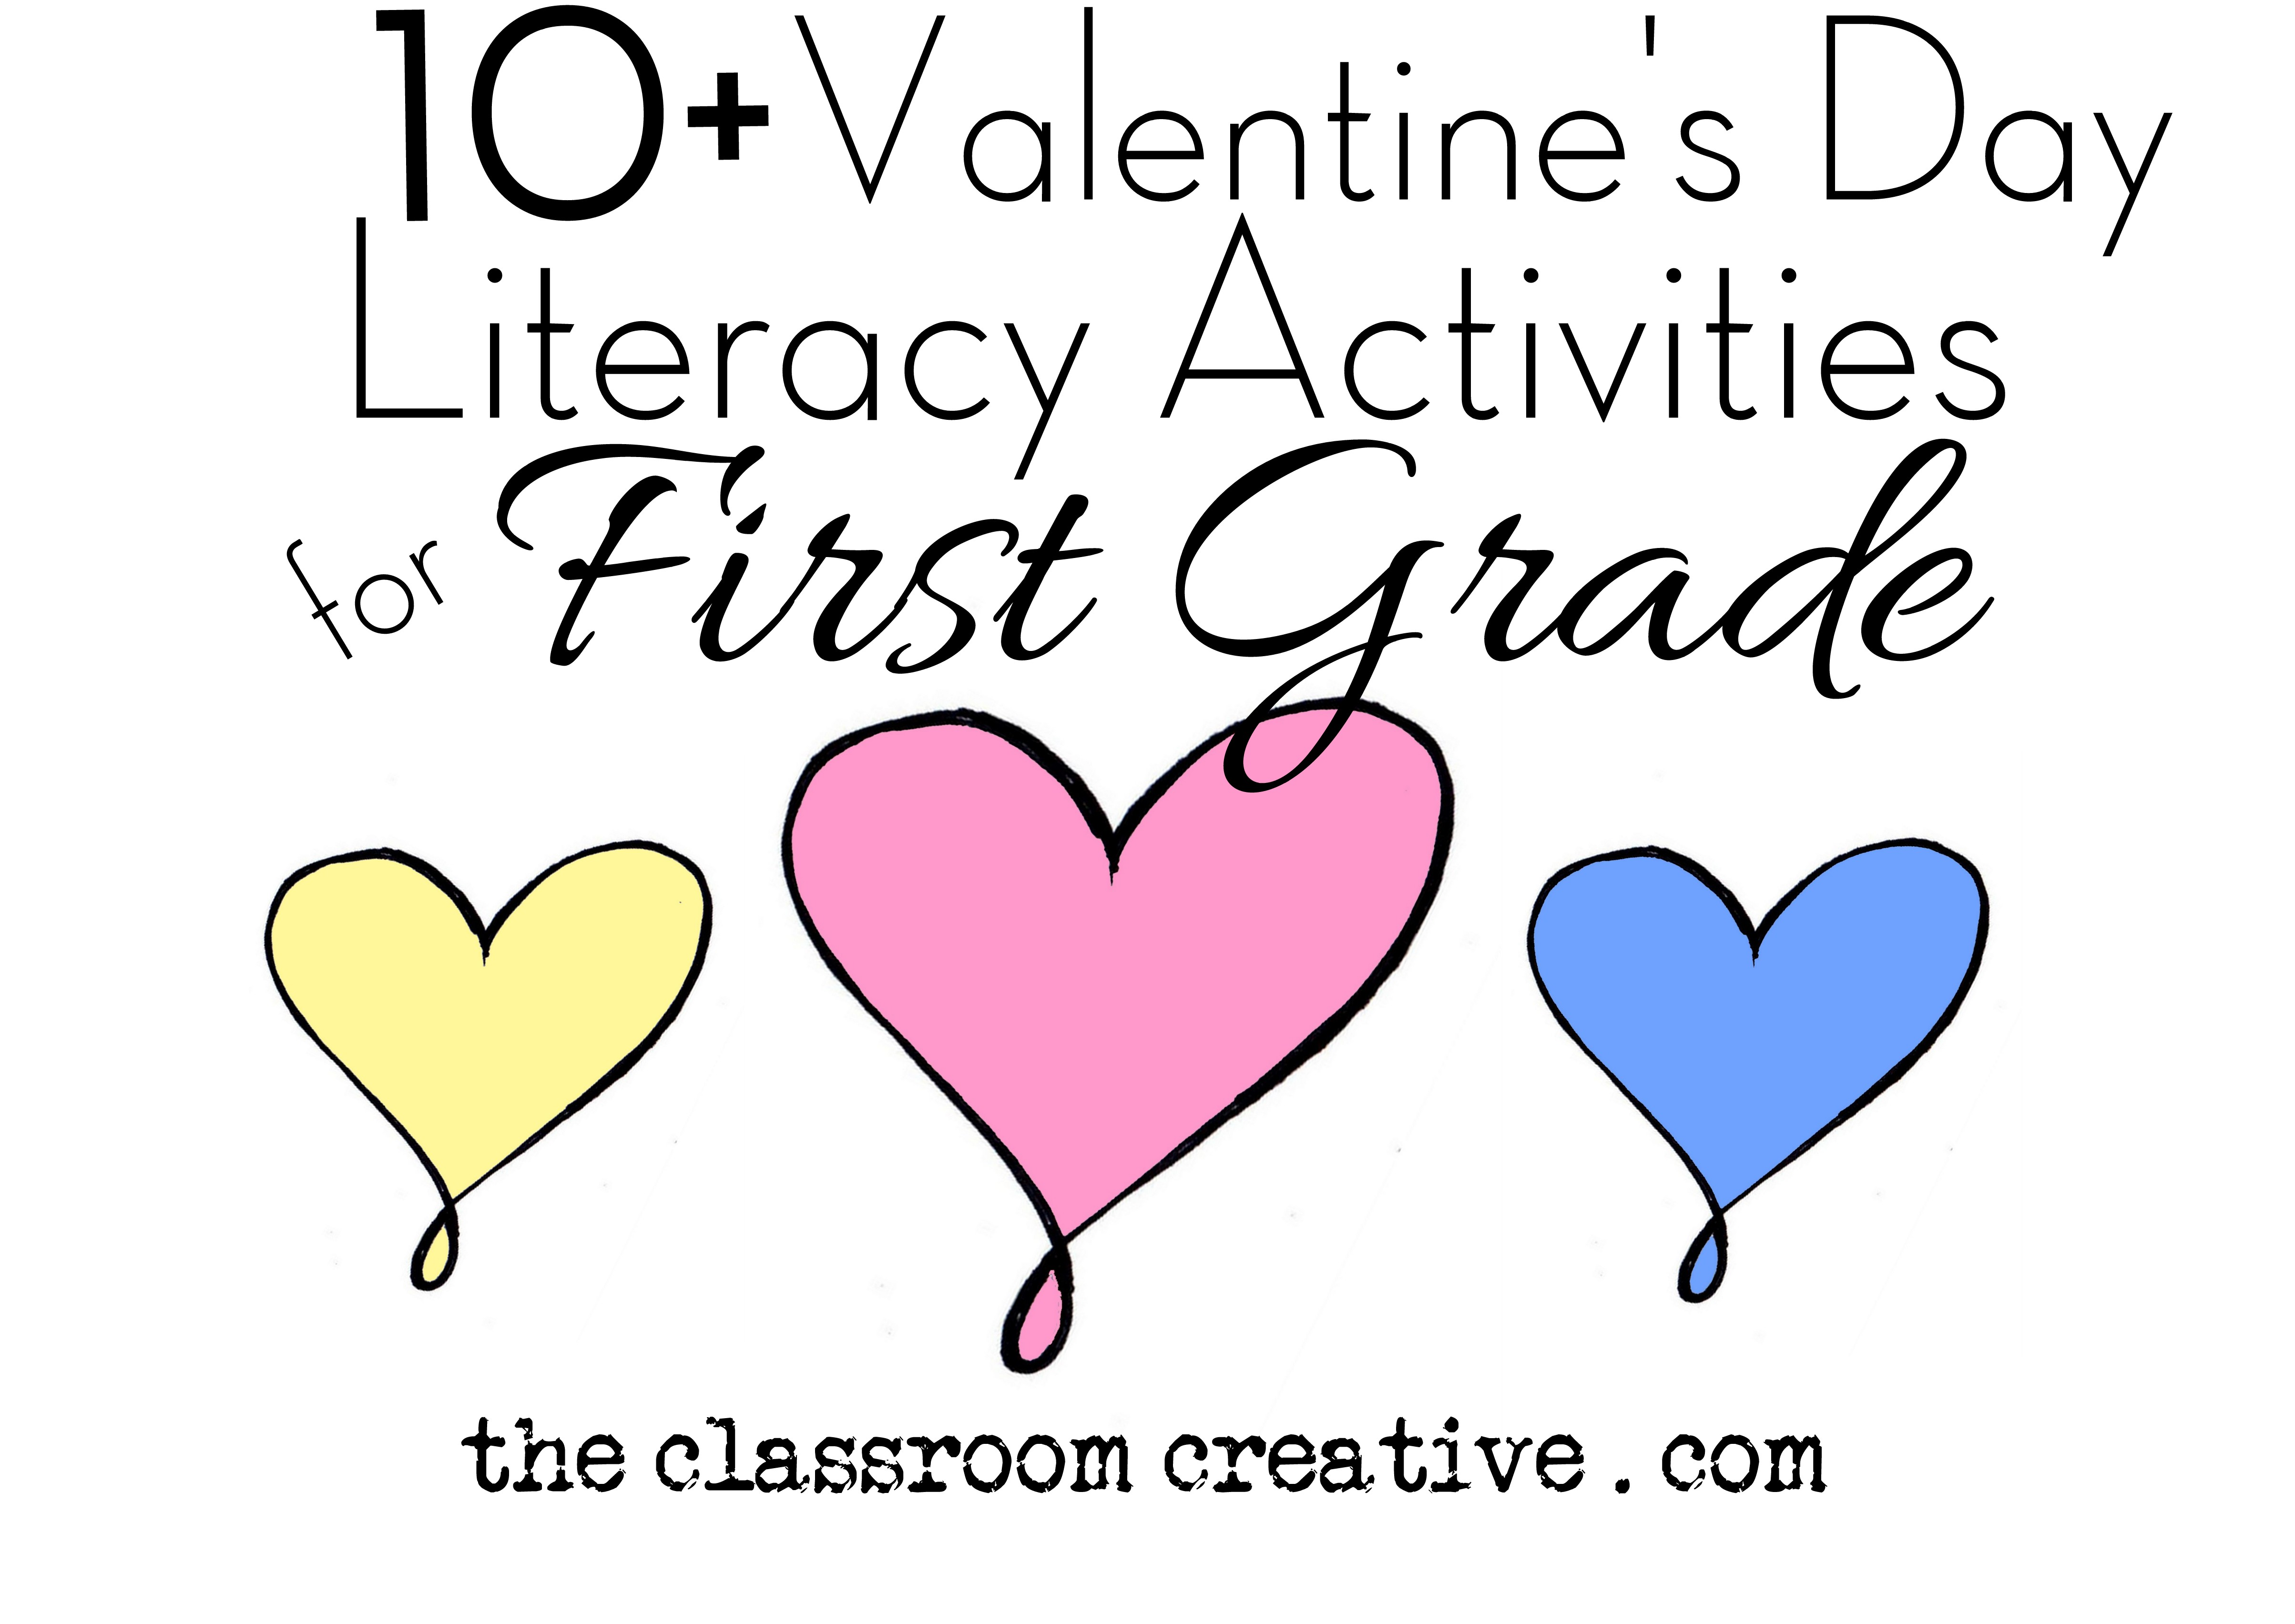 Valentines Day Literacy Activities for First Grade